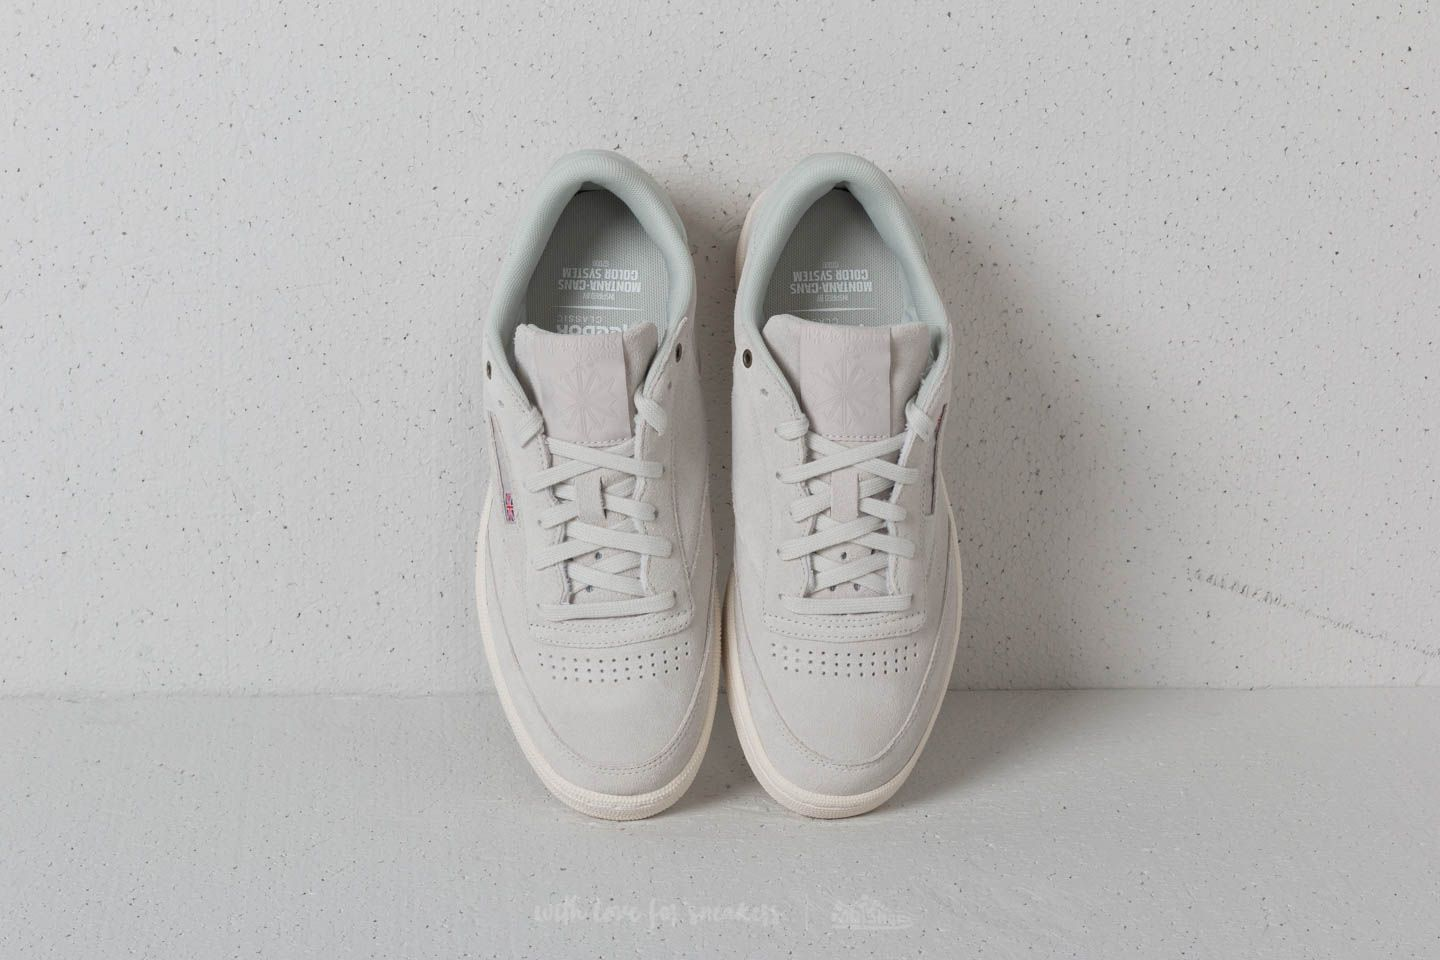 121cfebd0a88d3 Reebok x Montana Cans Club C 85 Pebble  Chalk at a great price 55 €